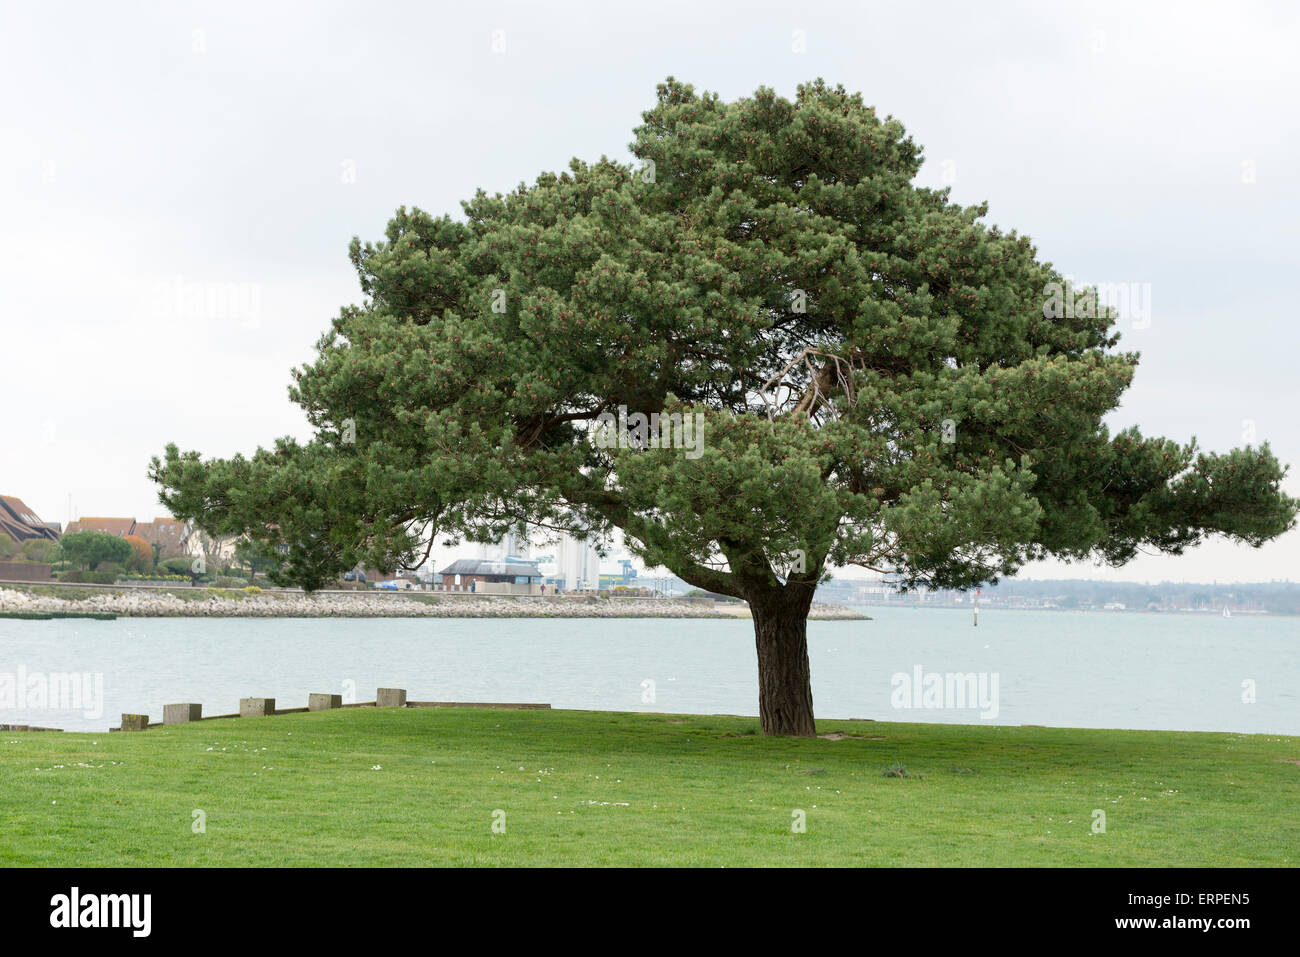 Lone tree on grass area on the waterfront at hythe in hampshire. - Stock Image